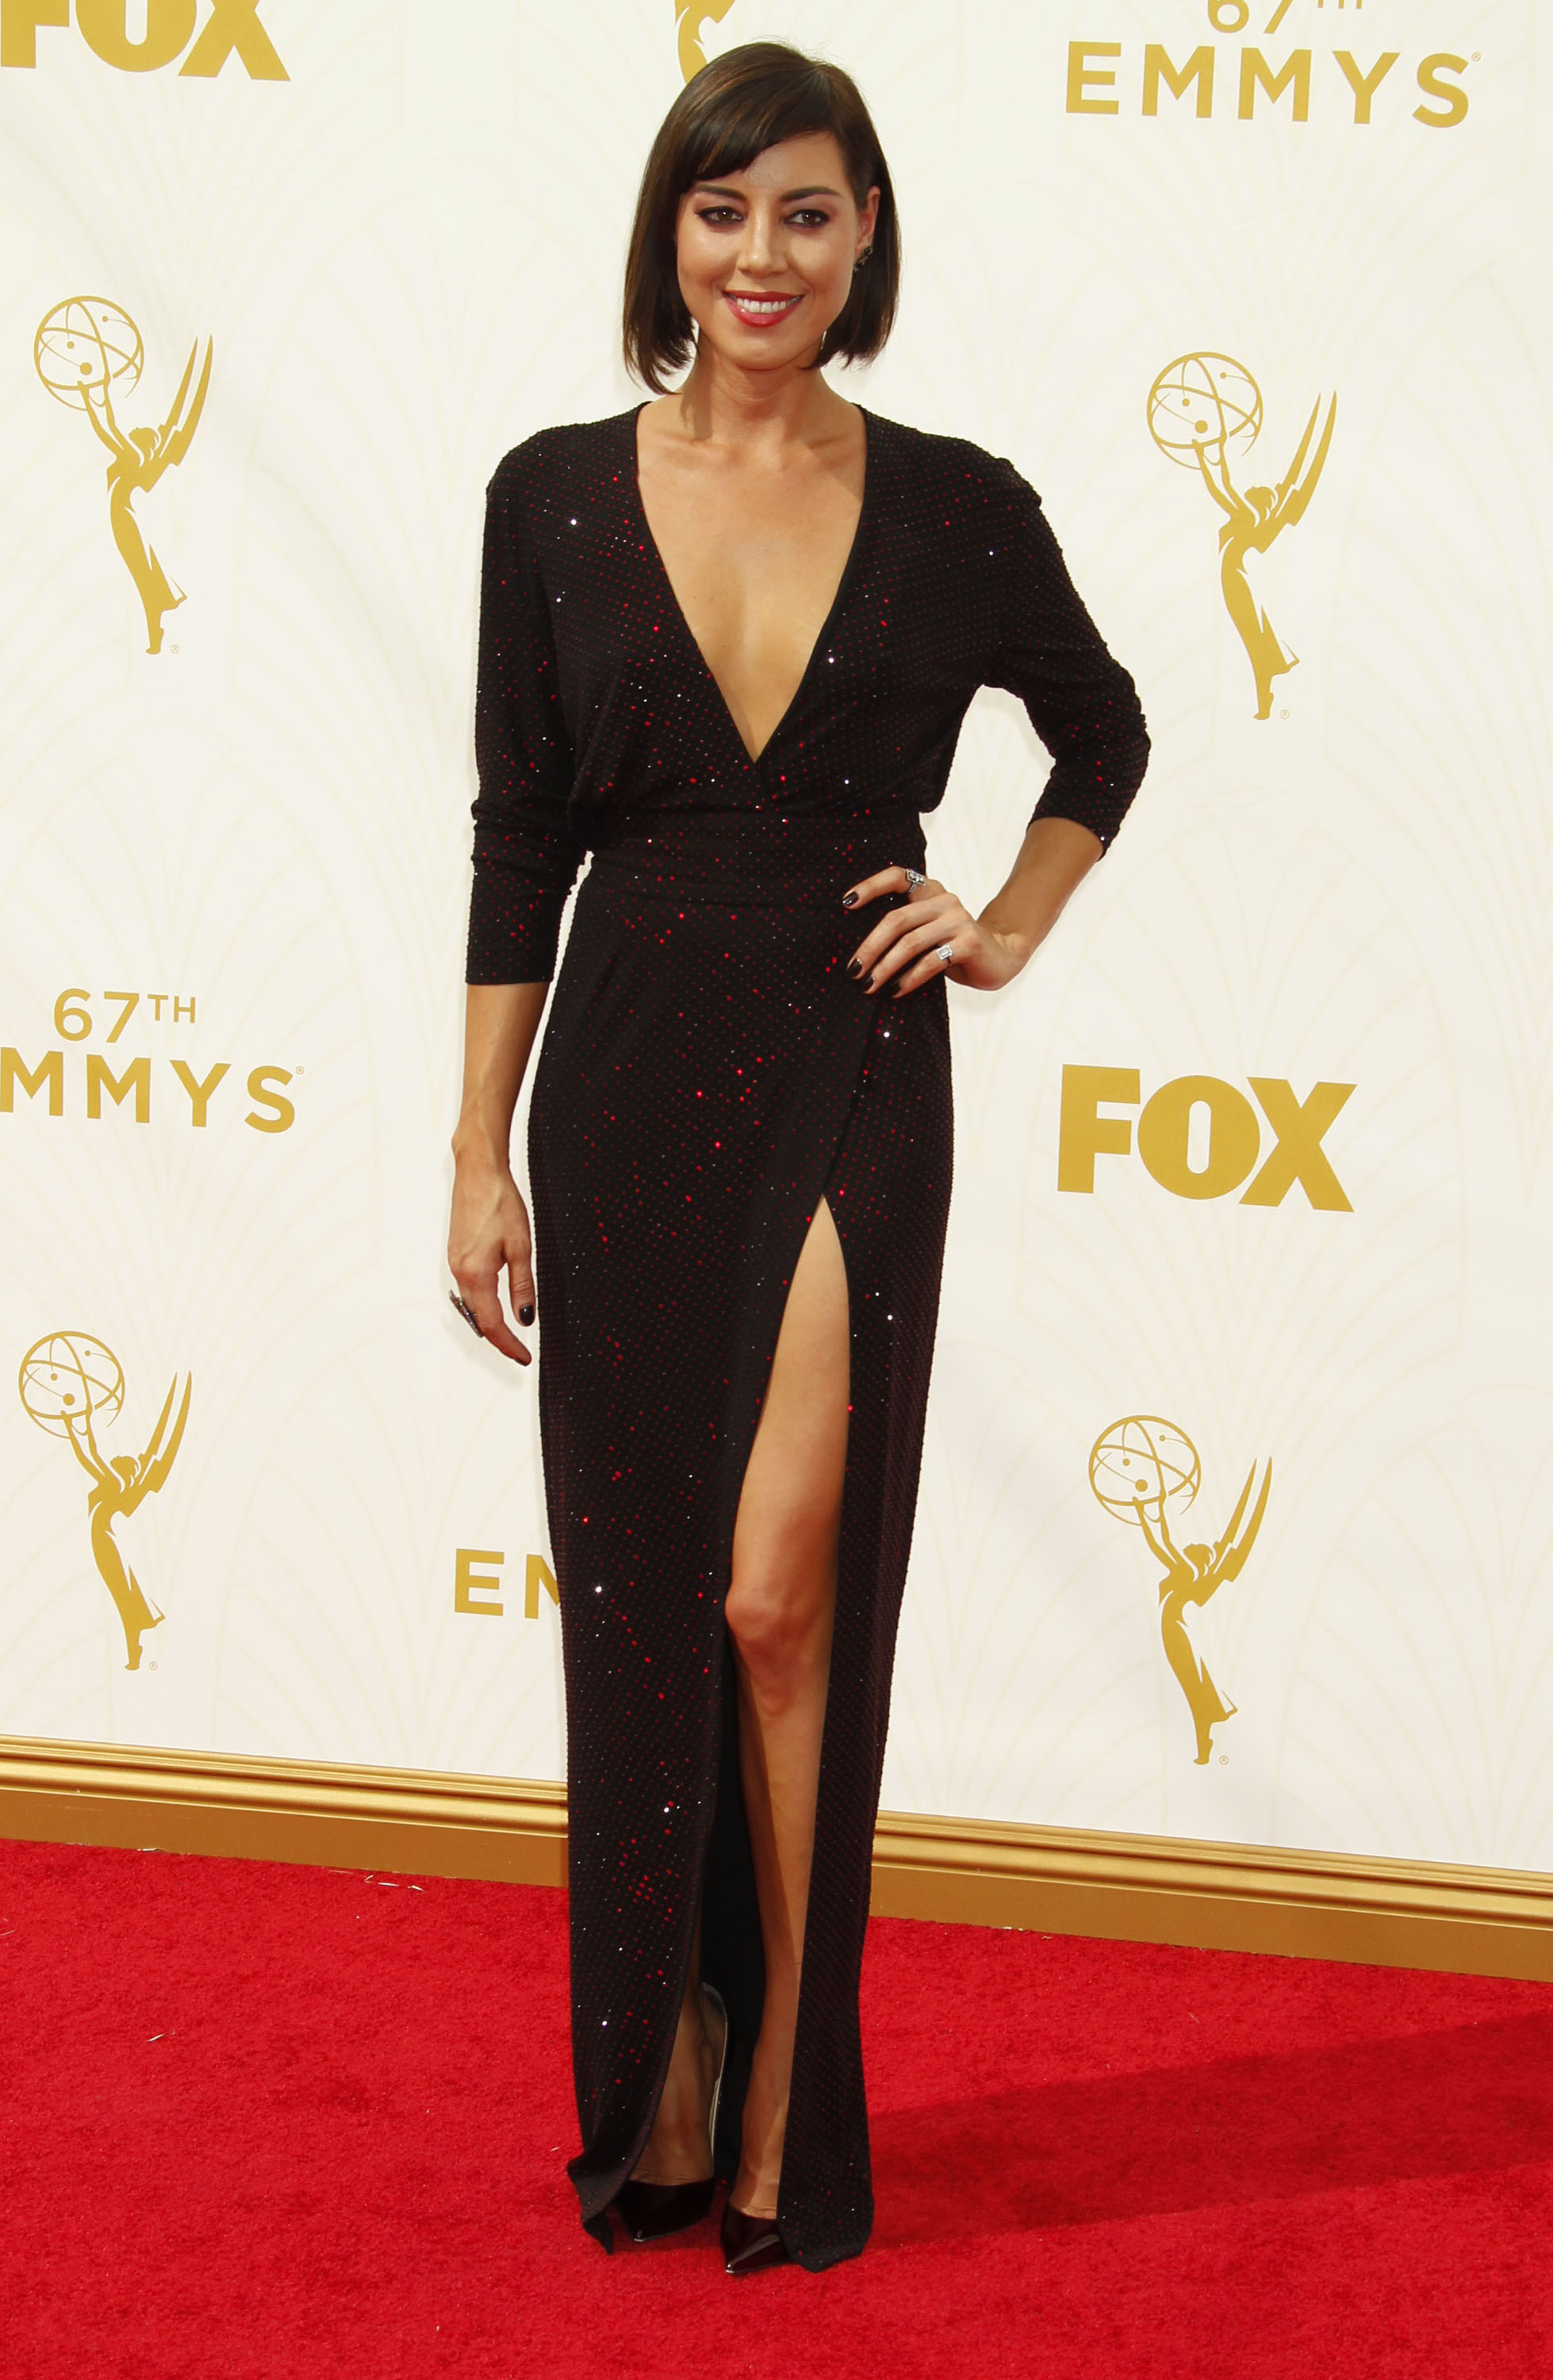 Emmy Awards Fugs and Fabs: Basic Black on the Red Carpet